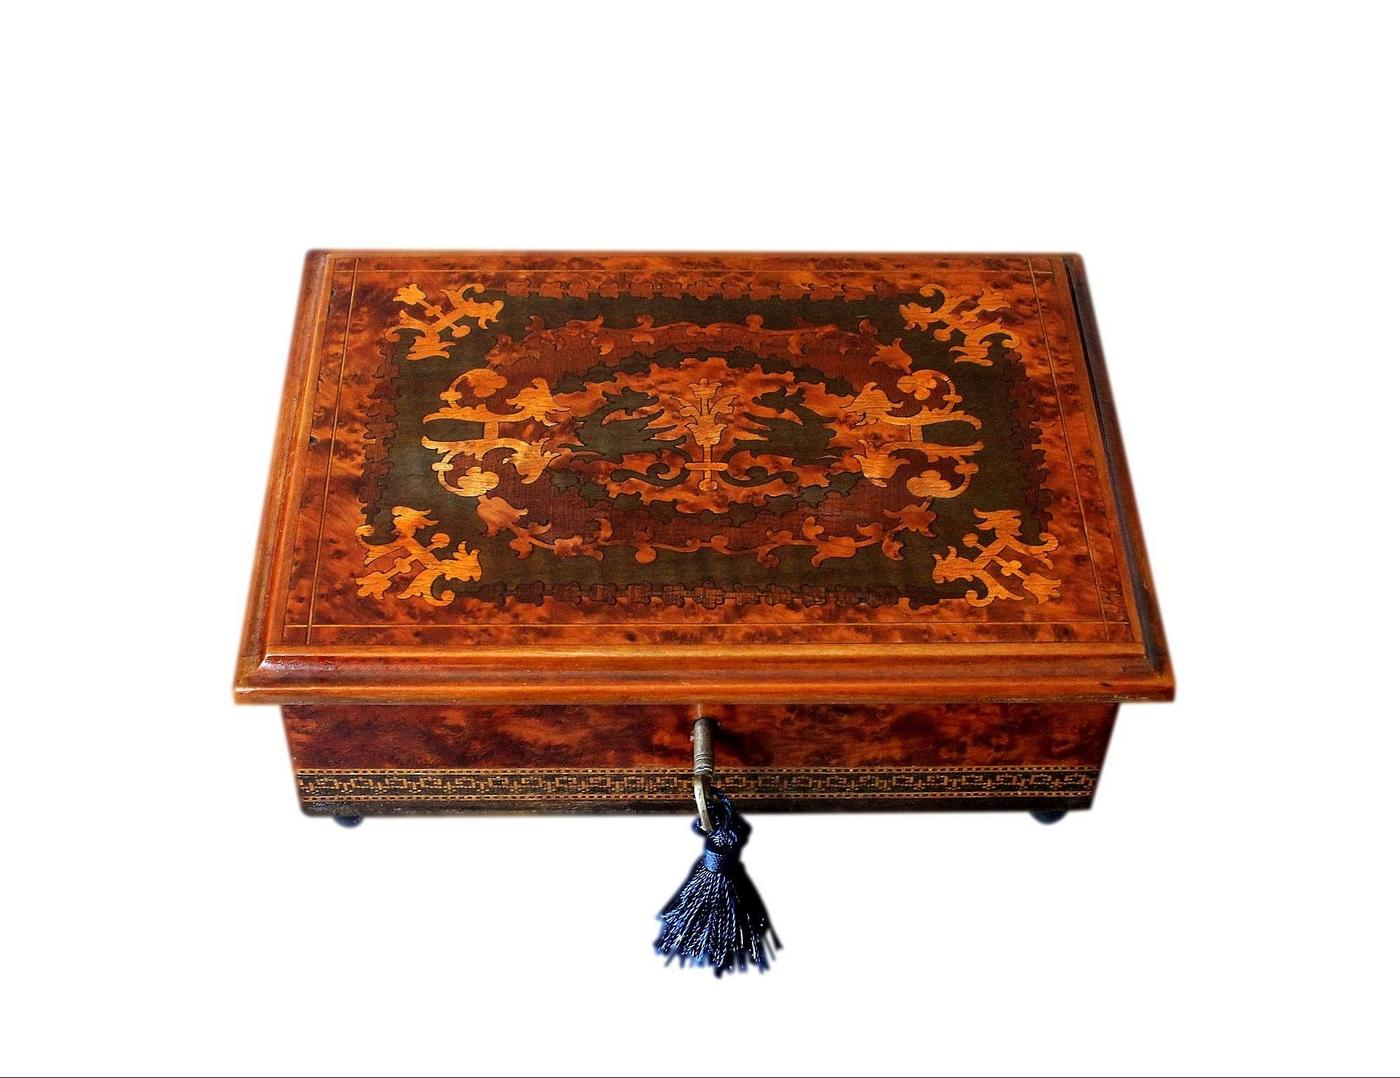 Lovely 1950s Refurbished Inlaid Sorrento Vintage Jewellery Box